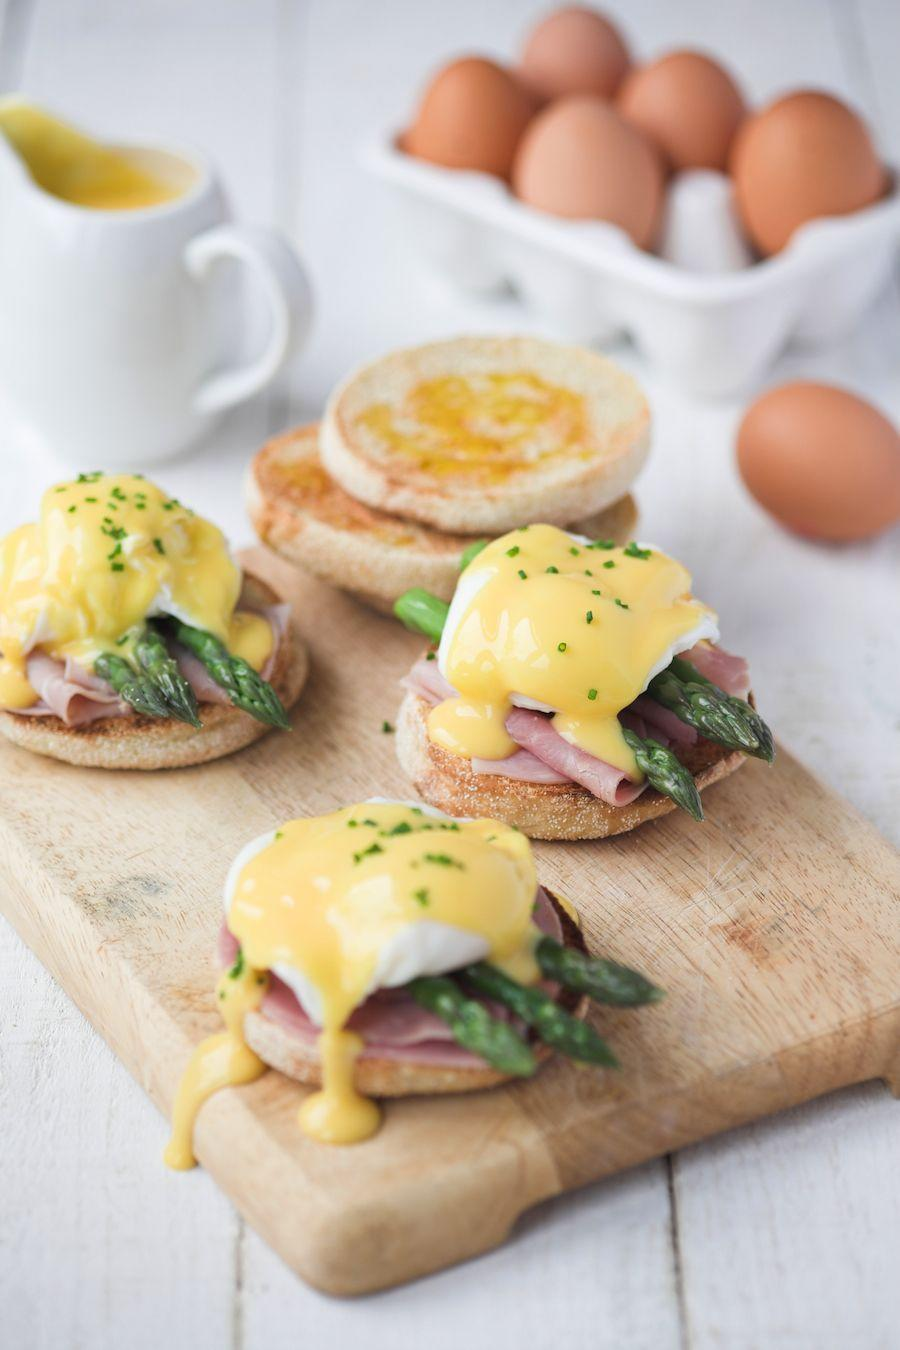 """<p>This springy, sophisticated egg dish is best paired with a mimosa. </p><p><a href=""""http://www.partybluprintsblog.com/party-themes/galentines-day-brunch-recipes-tips/"""" rel=""""nofollow noopener"""" target=""""_blank"""" data-ylk=""""slk:Get the recipe from Party Blueprints Blog »"""" class=""""link rapid-noclick-resp""""><em>Get the recipe from Party Blueprints Blog »</em></a></p>"""